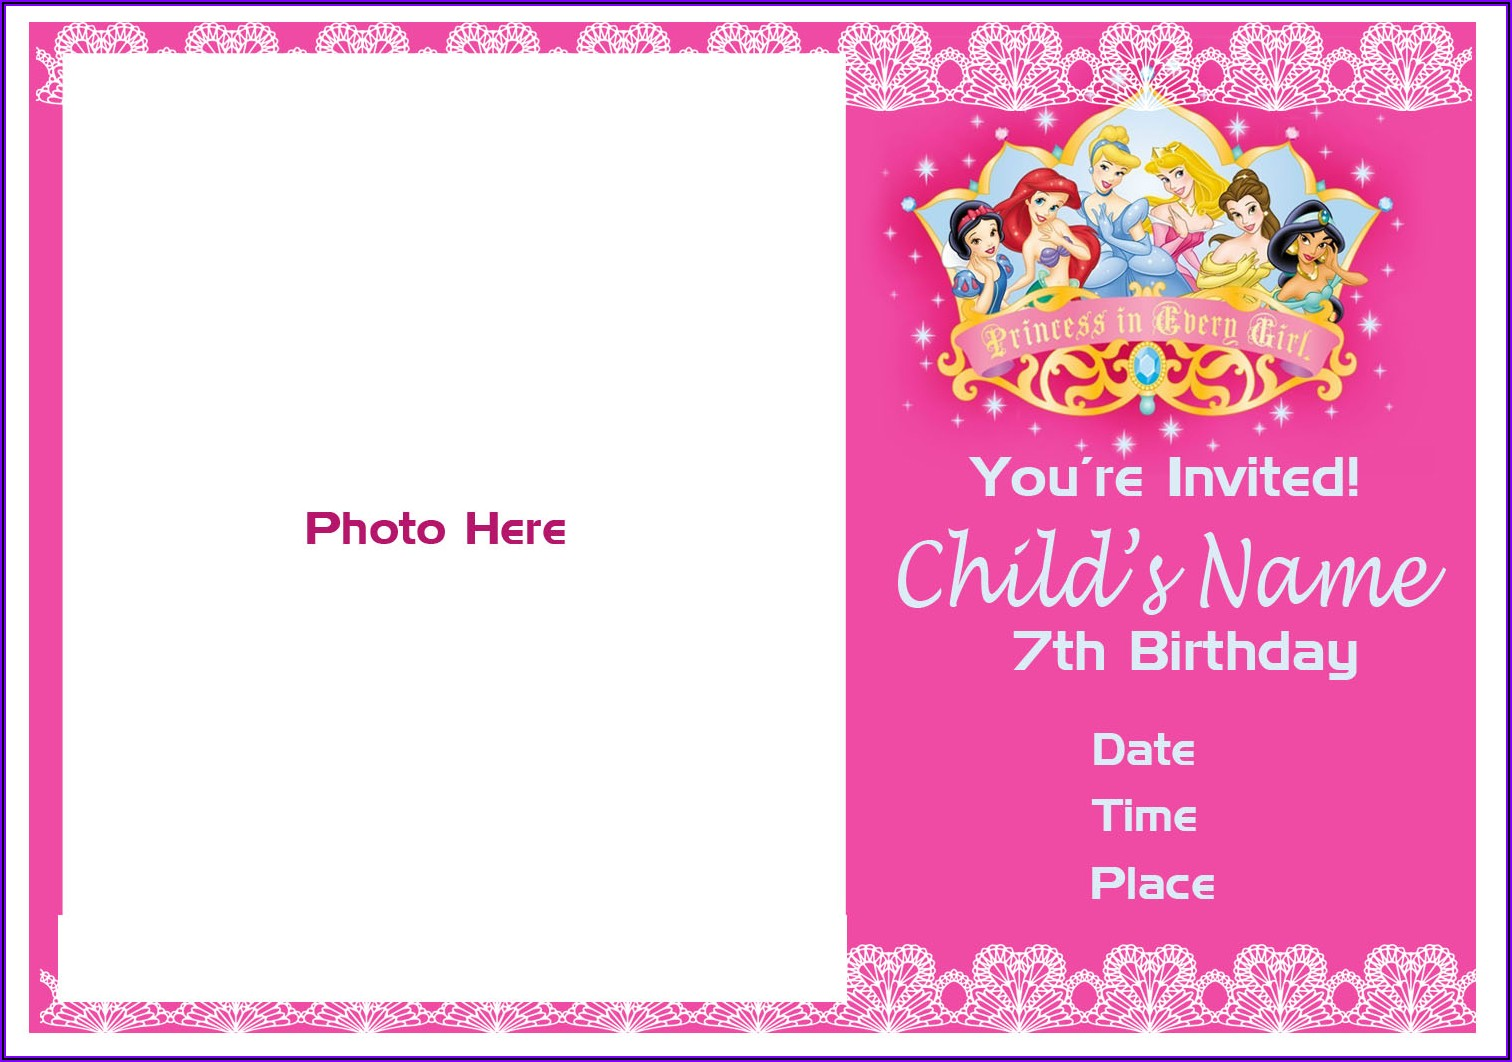 7th Birthday Invitation Message For Girl